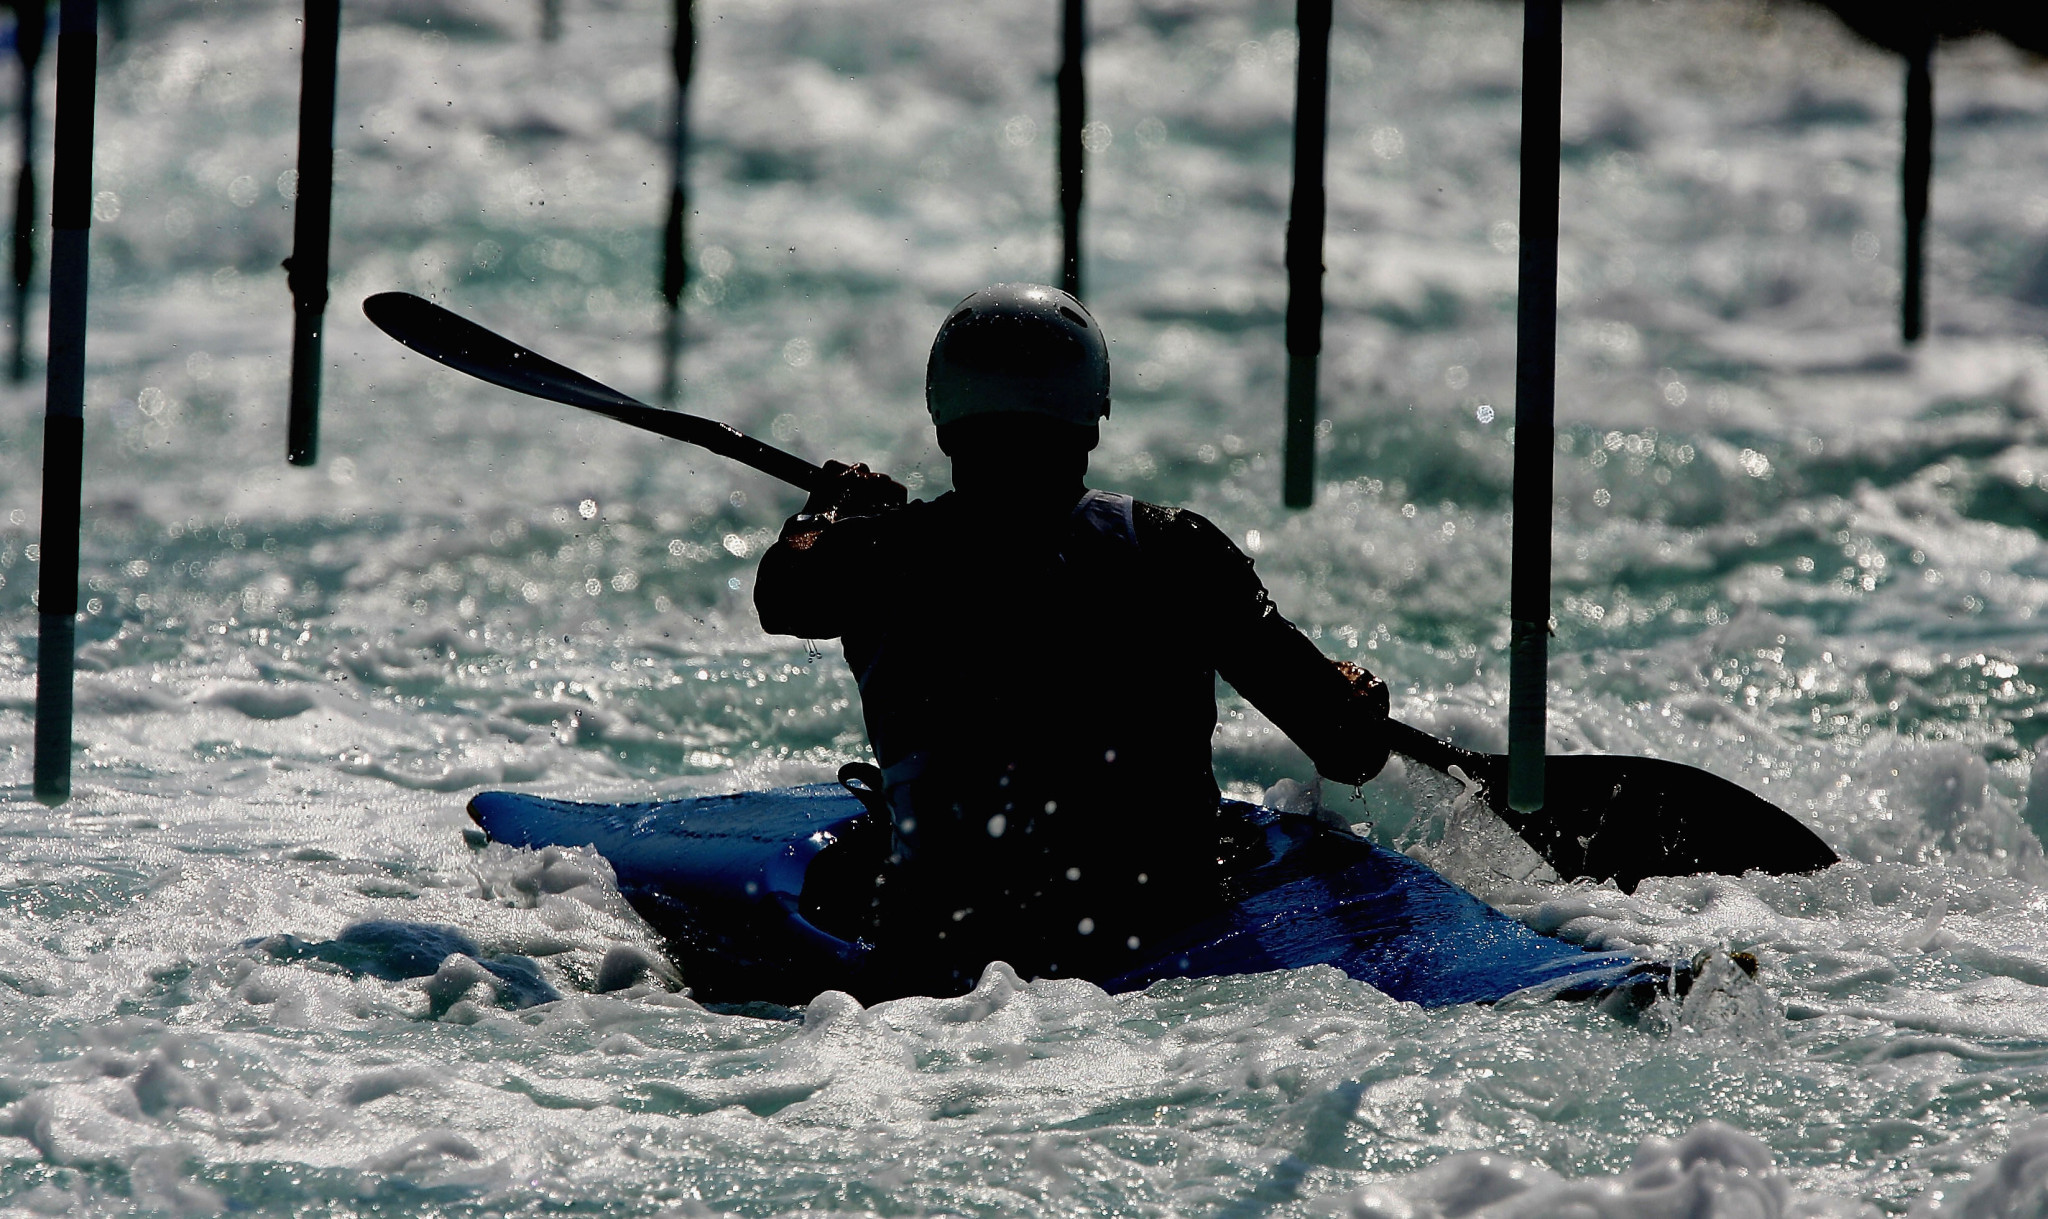 India's canoeing team are not competing at the Asian Canoe Slalom and Canoe Sprint Championships this month ©Getty Images